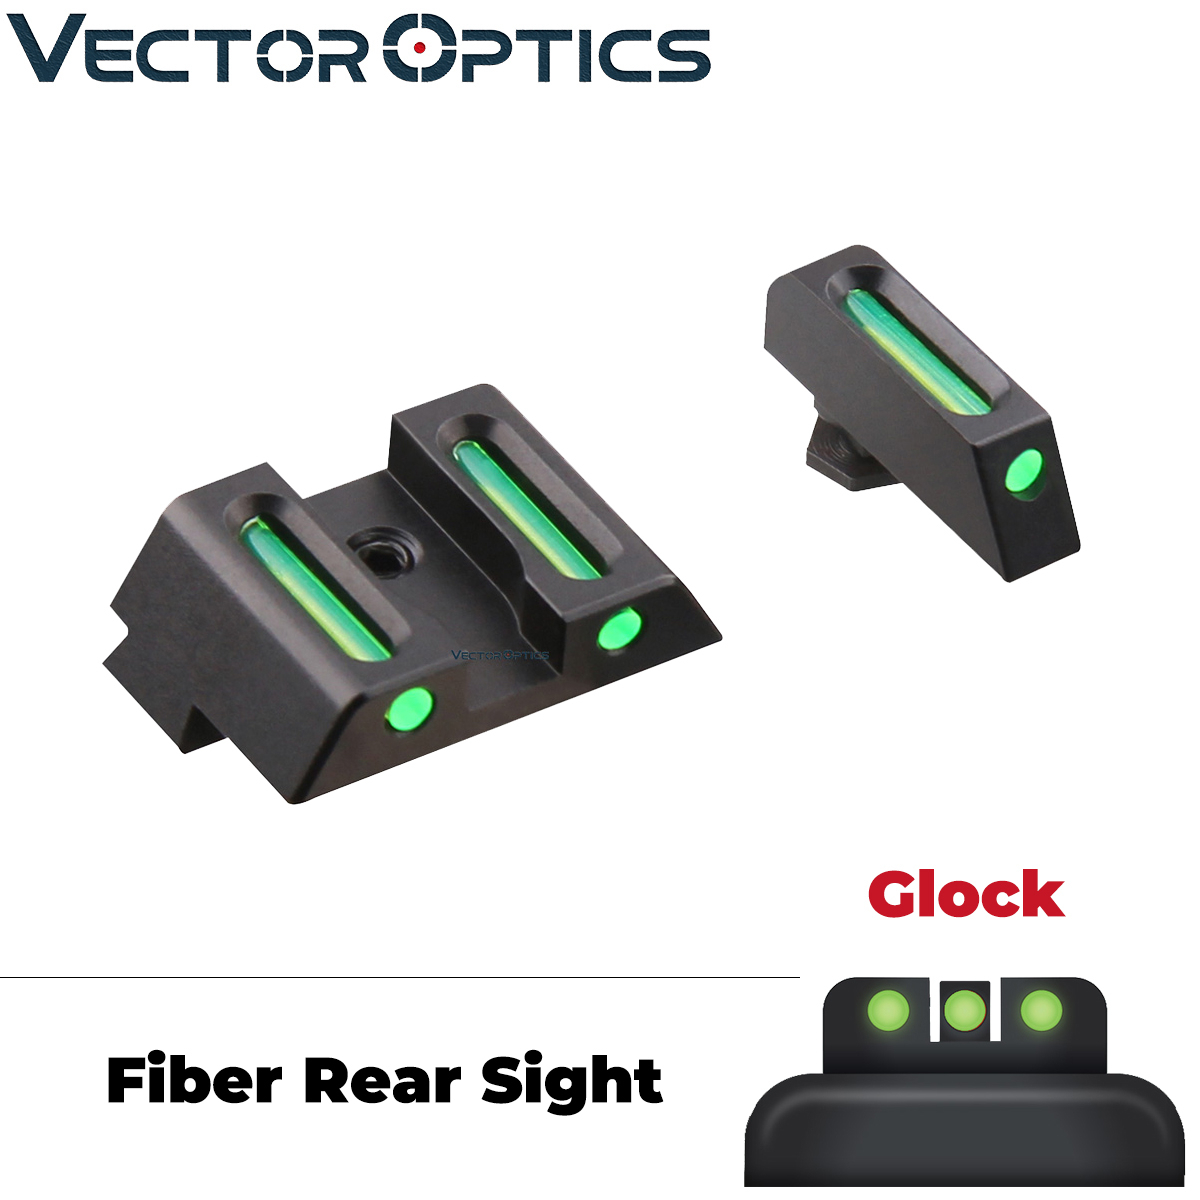 Vector Optics Handgun Pistol Front Rear Fiber Optic Combat Sight Combo Green Fit Glock Models G17 G19 Etc.